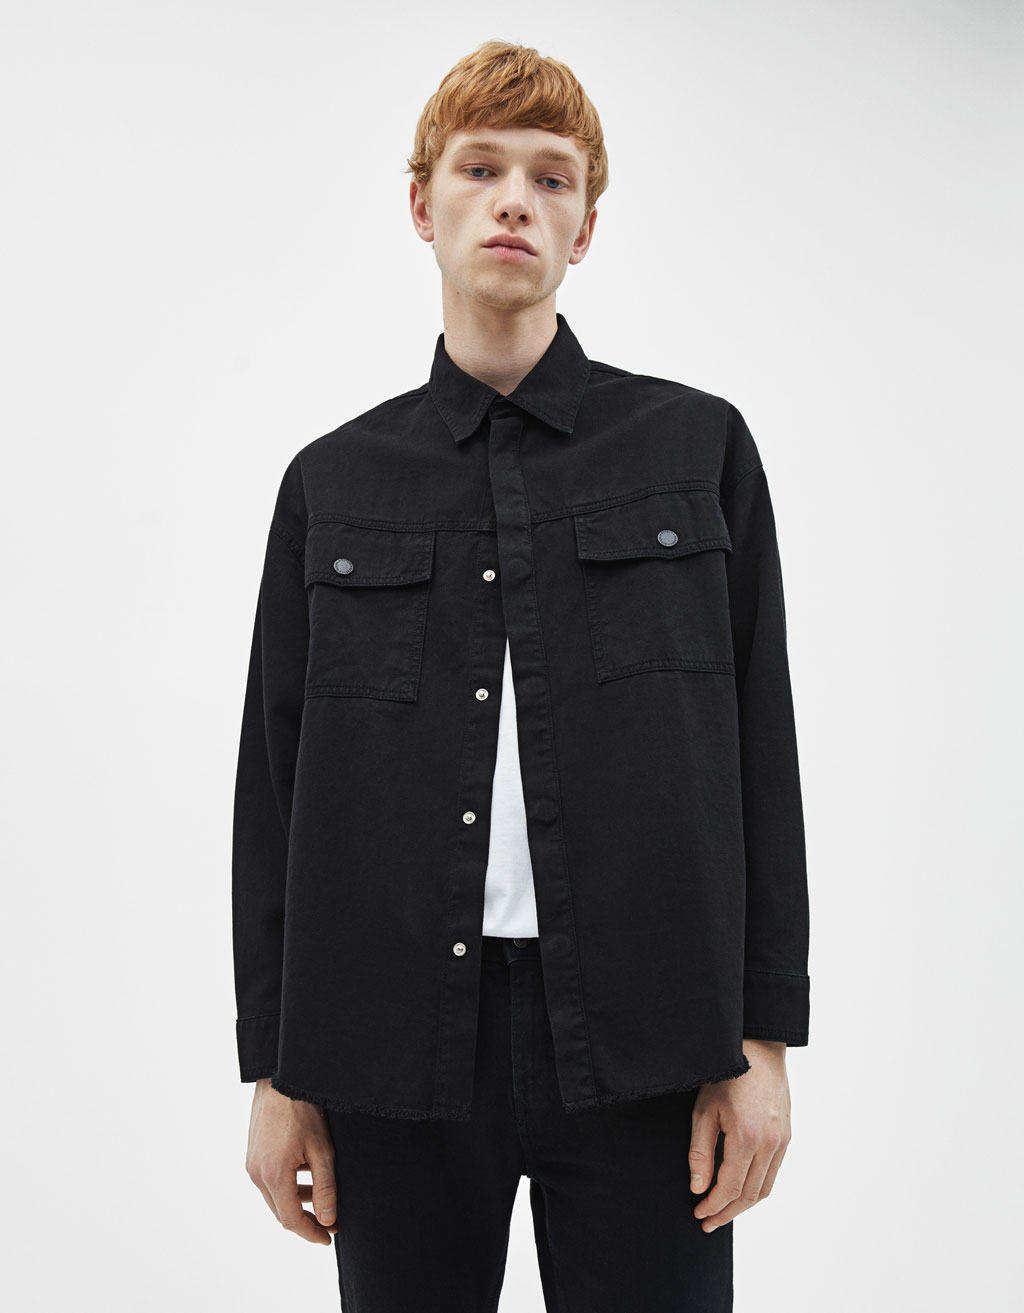 Oversized shirt with pockets